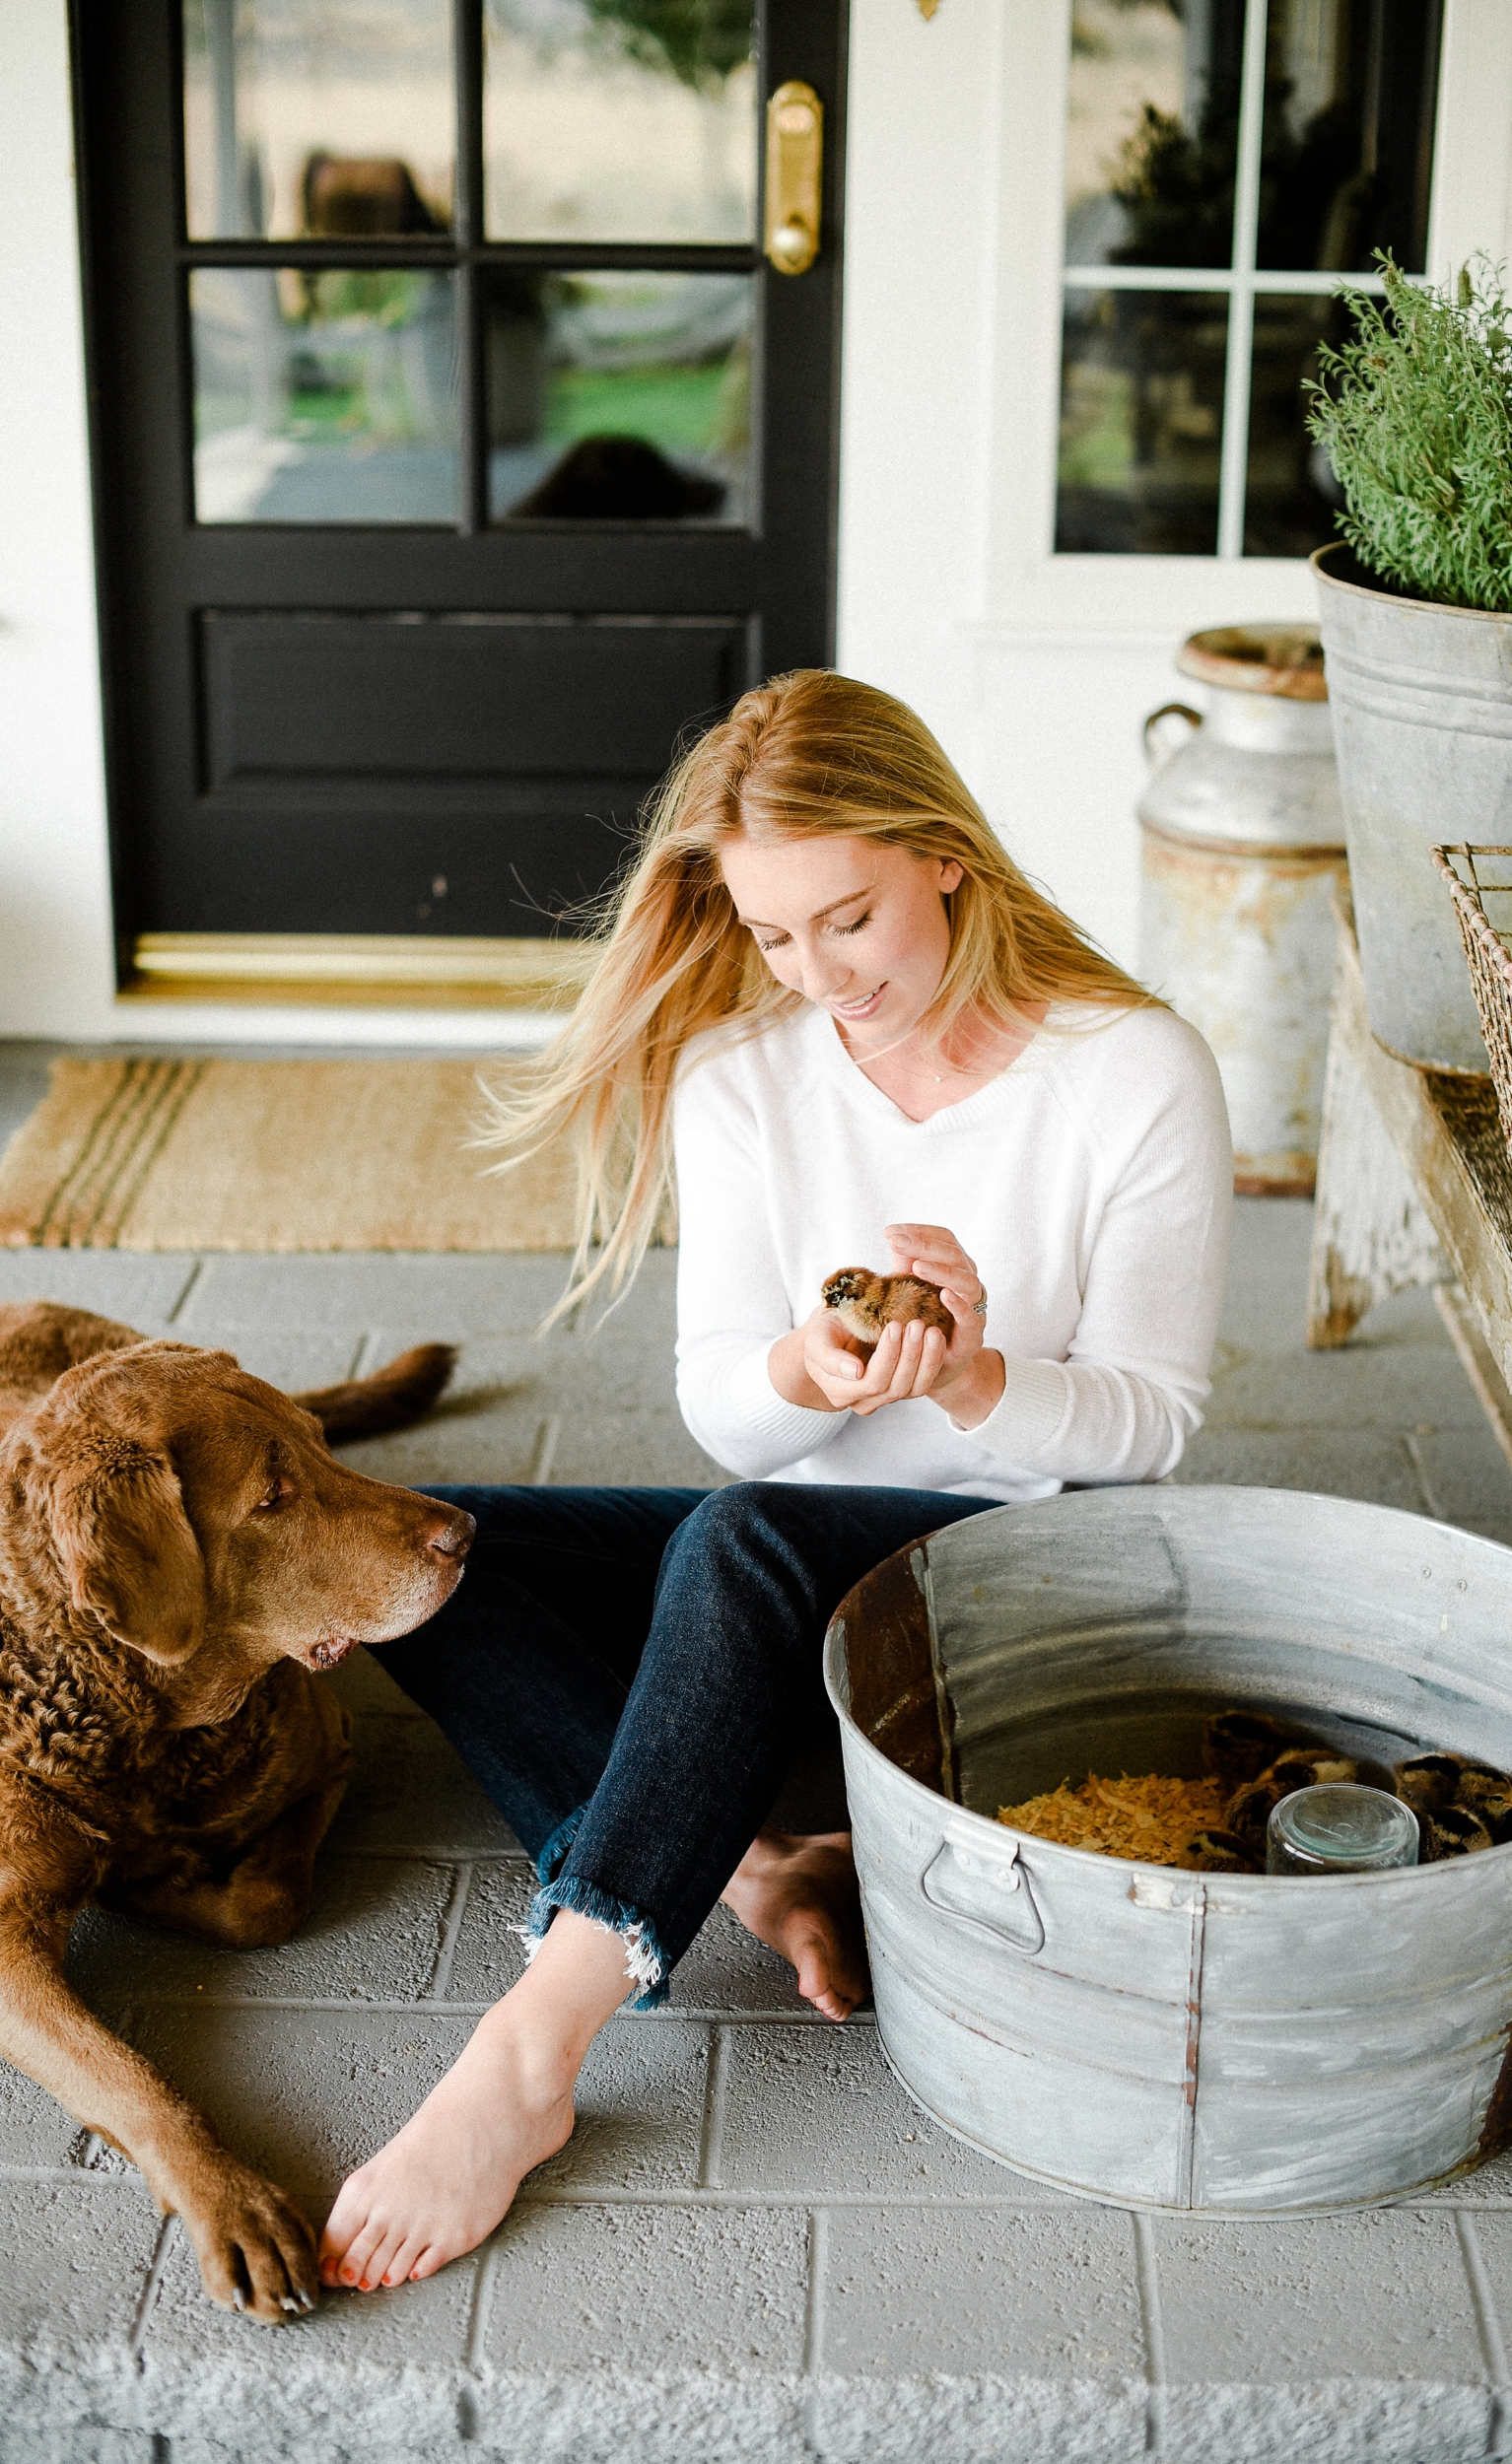 meet Chloe - learn about her story →see her recipe box →explore her home →